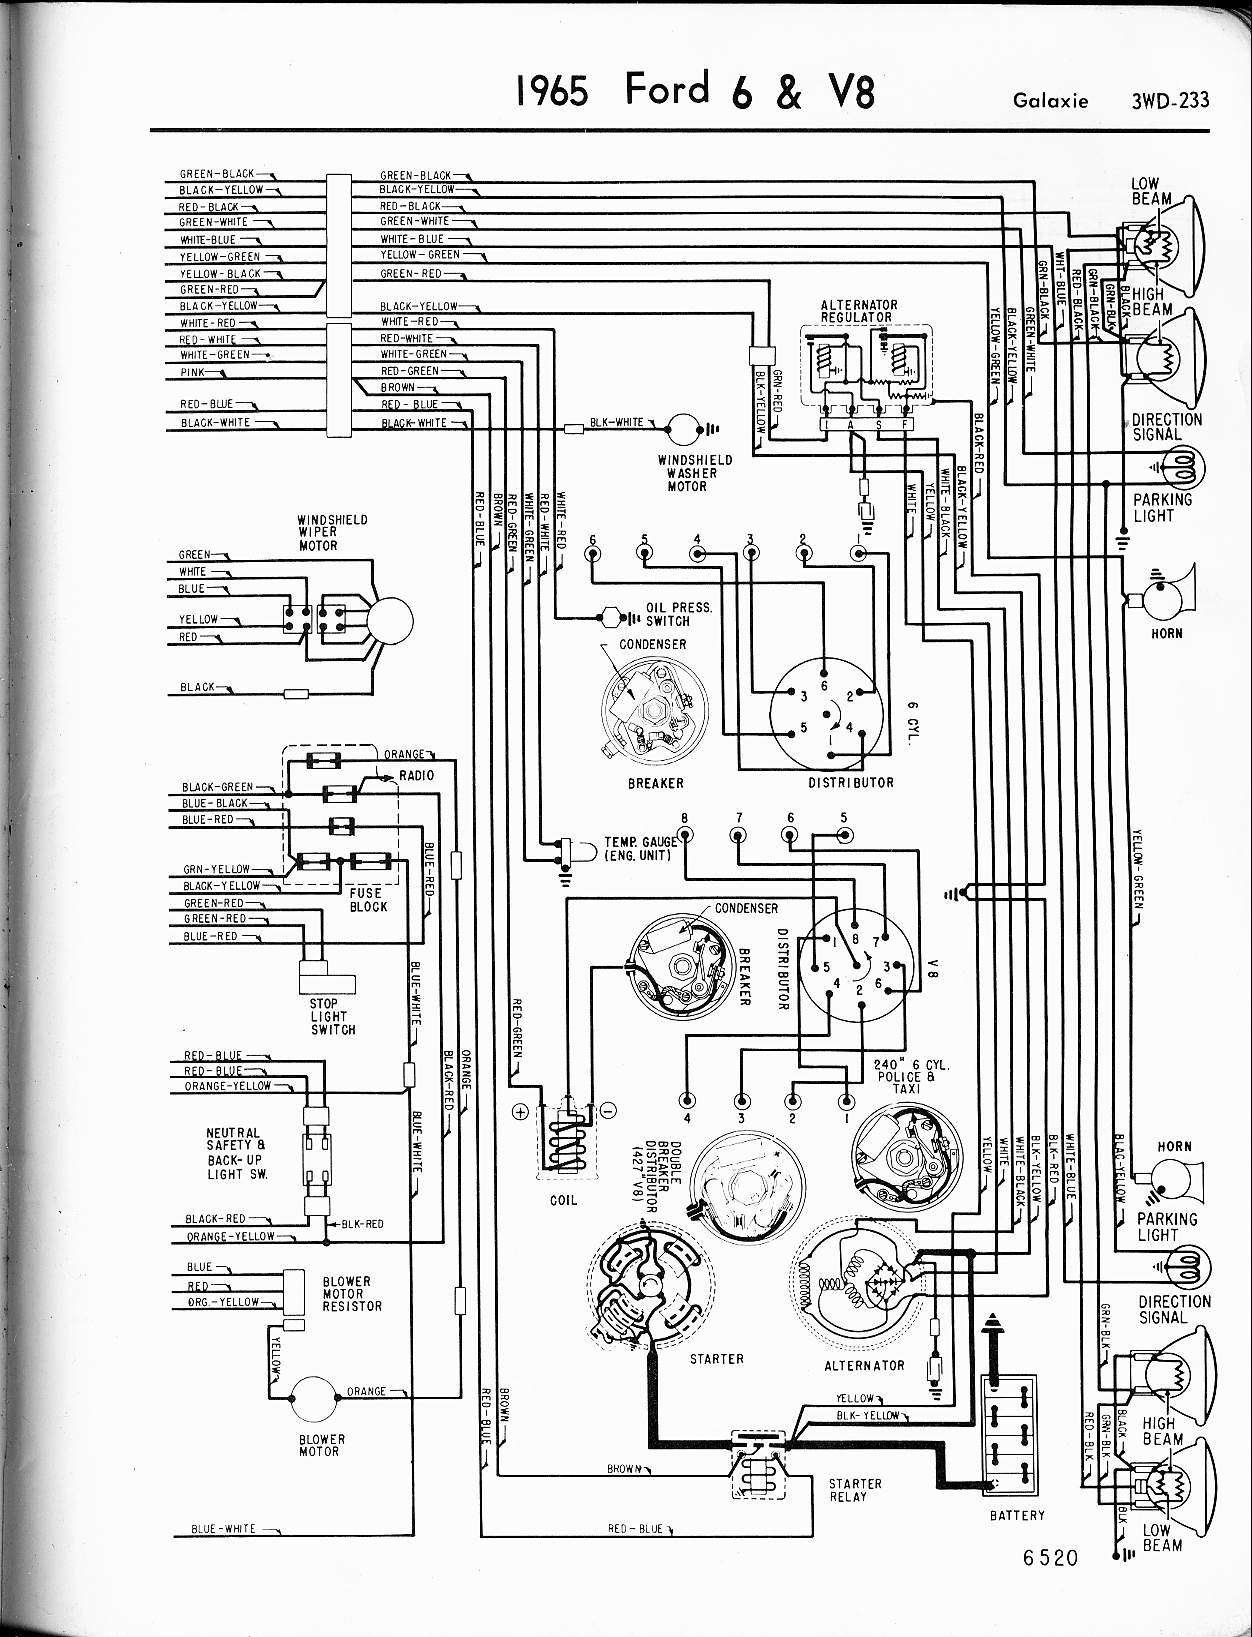 oset wiring diagram phantom wiring diagram phantom zenmuse h d Lexus Power Window Wiring Diagram falcon wiring diagrams ford falcon au power windows wiring diagram ford wiring diagram wiring diagrams